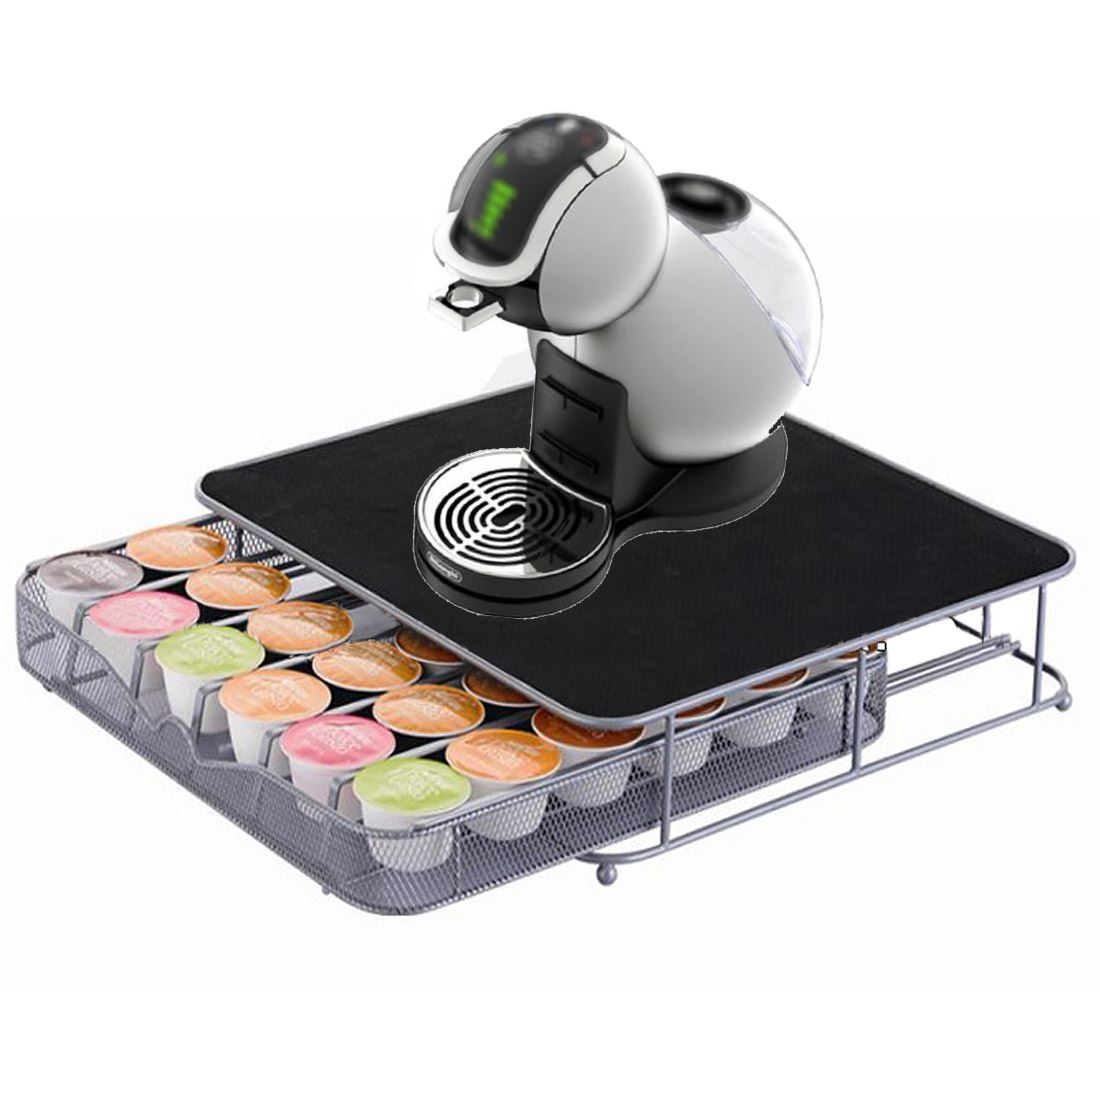 Dolce Gusto Coffee Pod Stand And Drawer Storage Holds 36